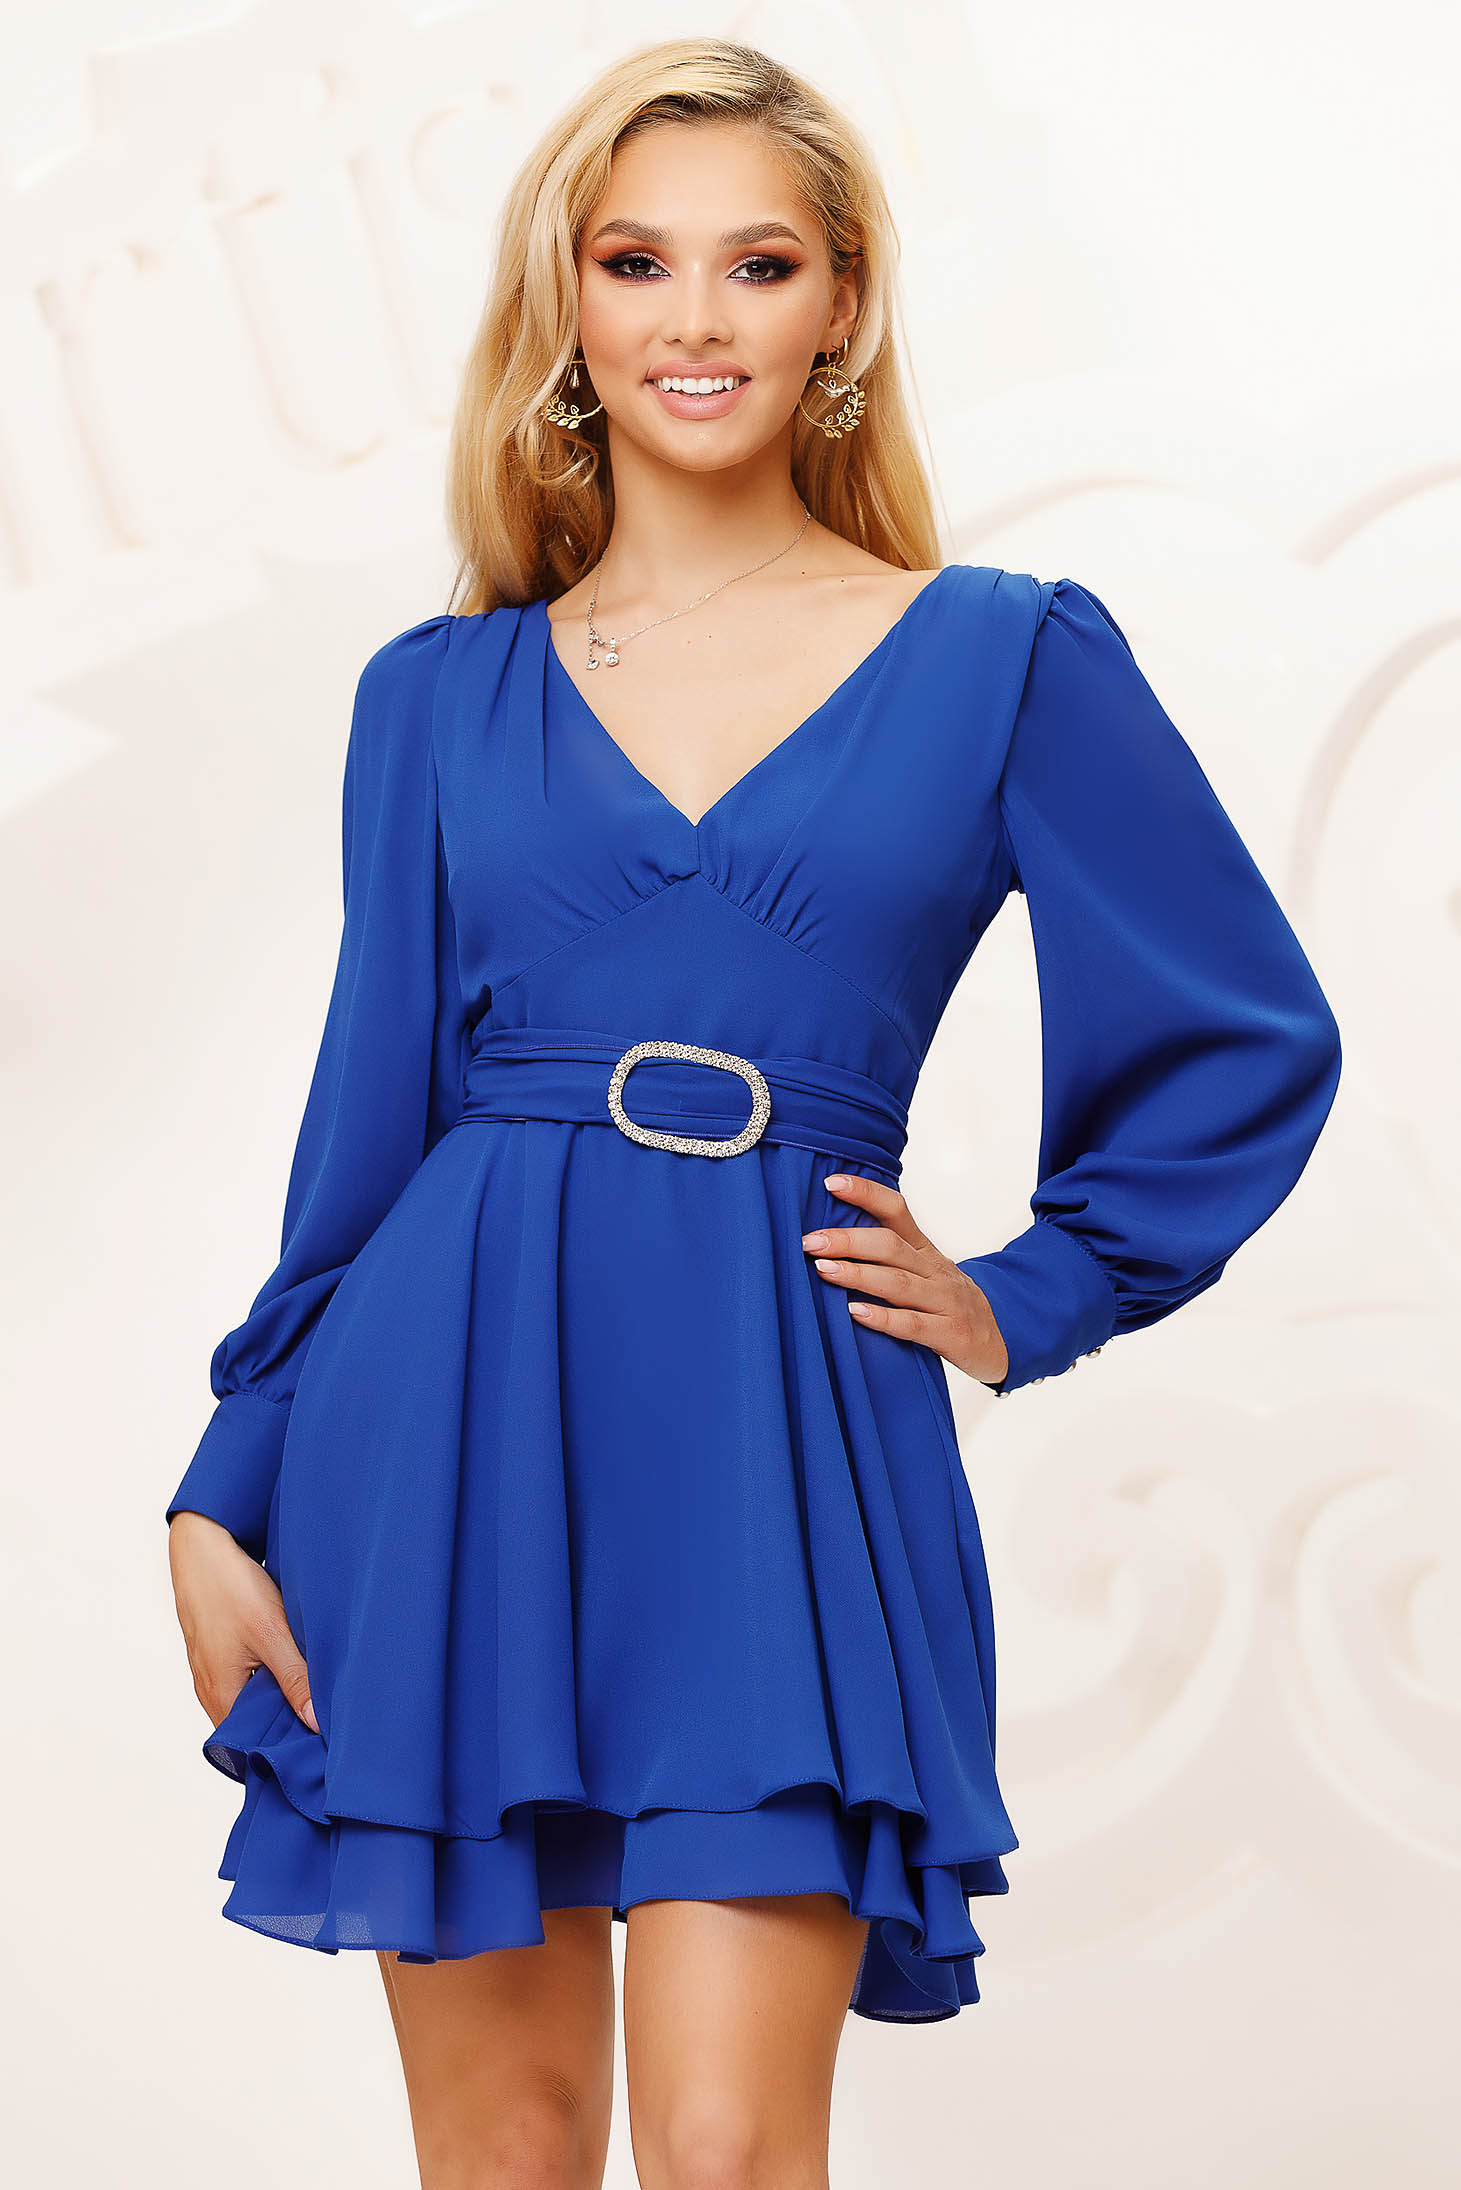 Blue dress from veil fabric cloche short cut occasional with puffed sleeves